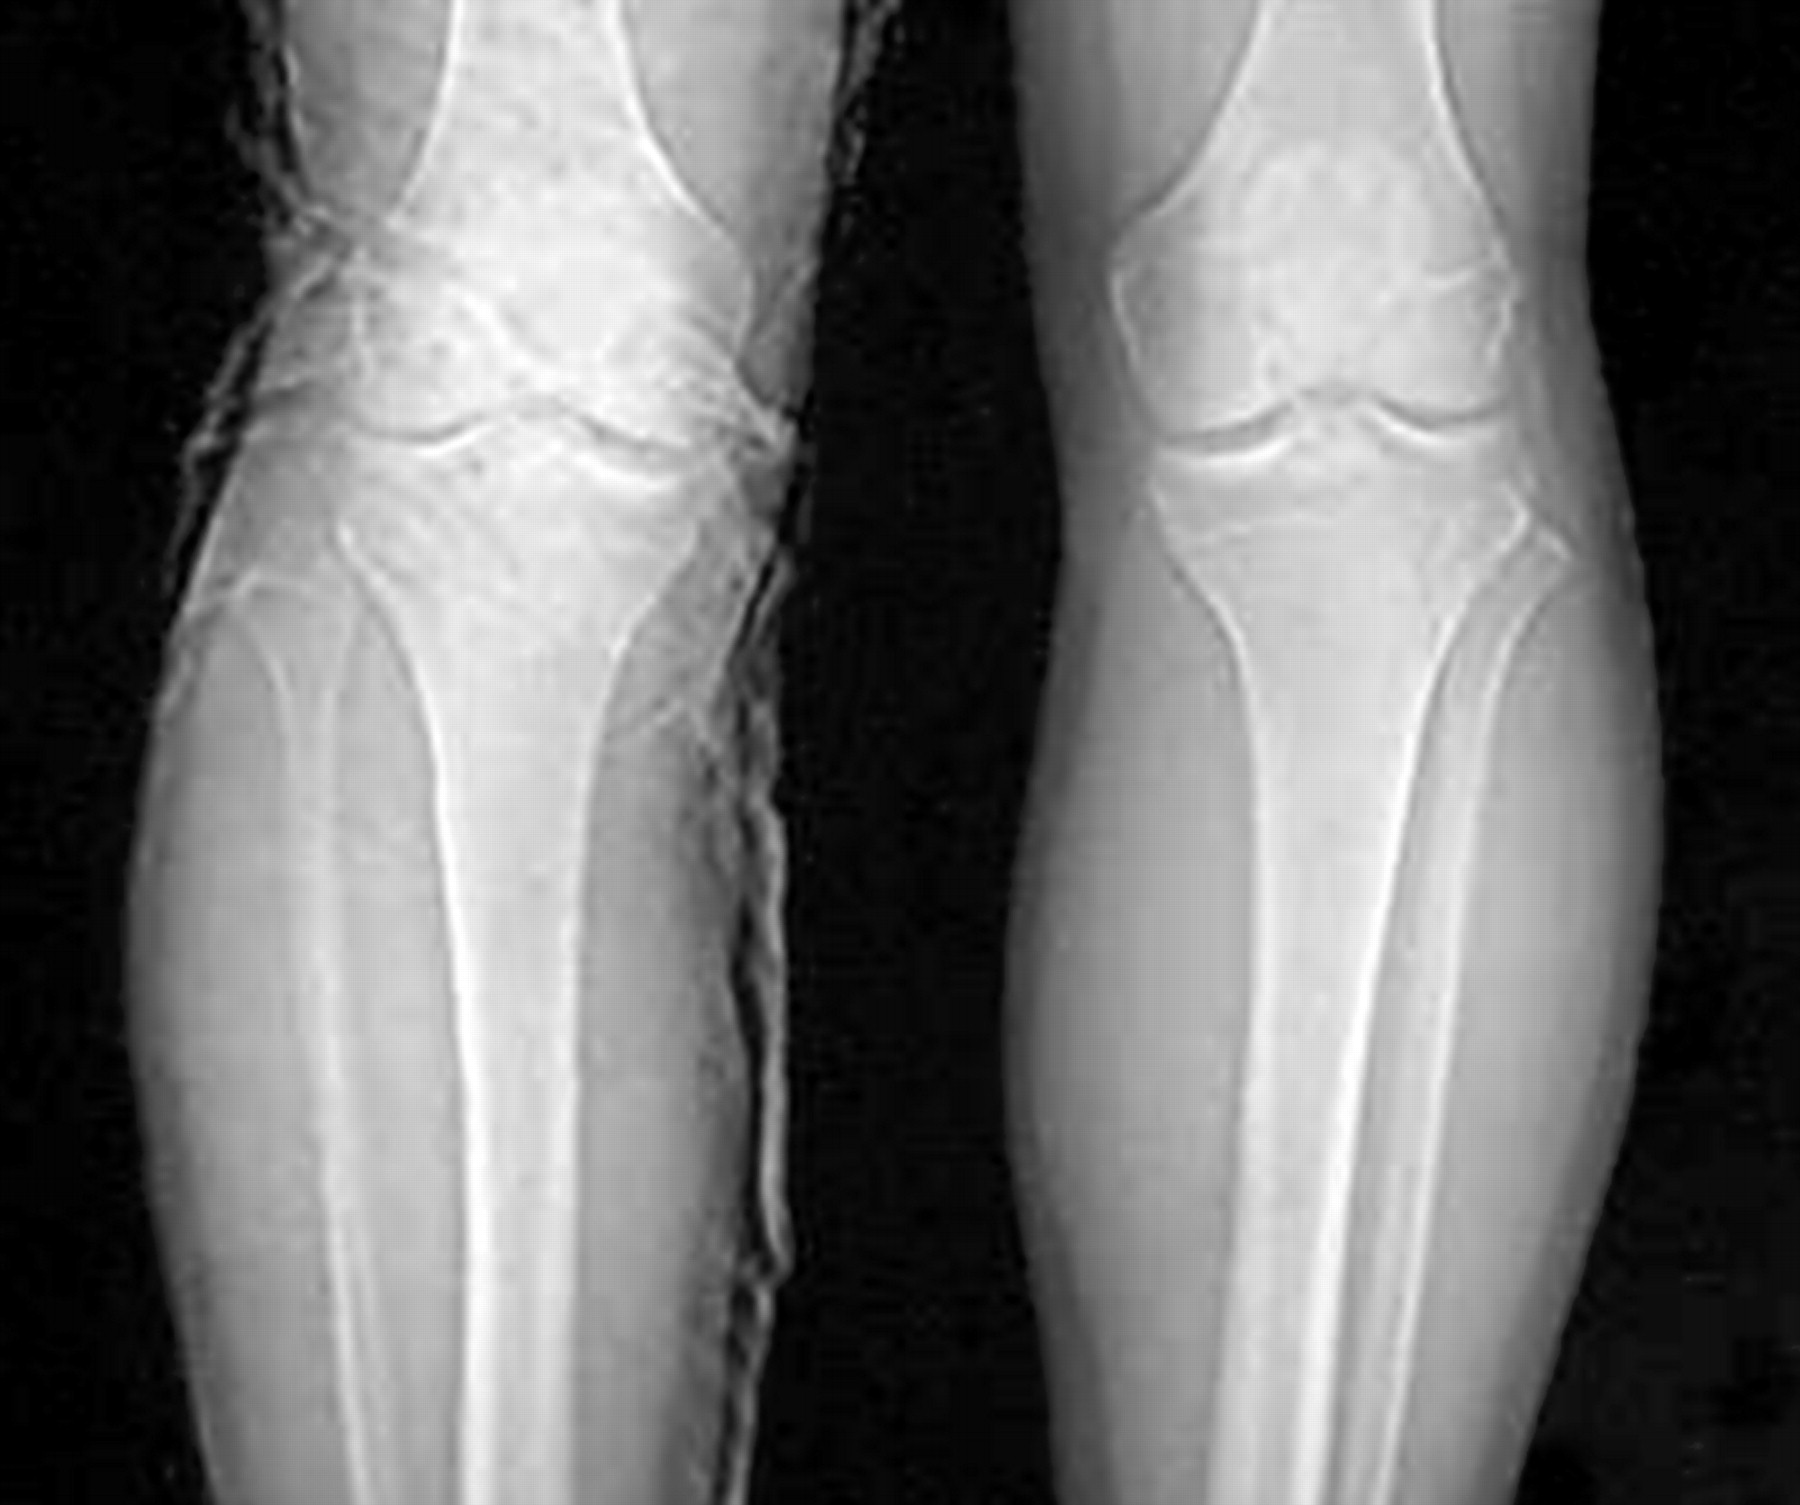 Isolated Dislocation Of The Proximal Tibiofibular Joint In